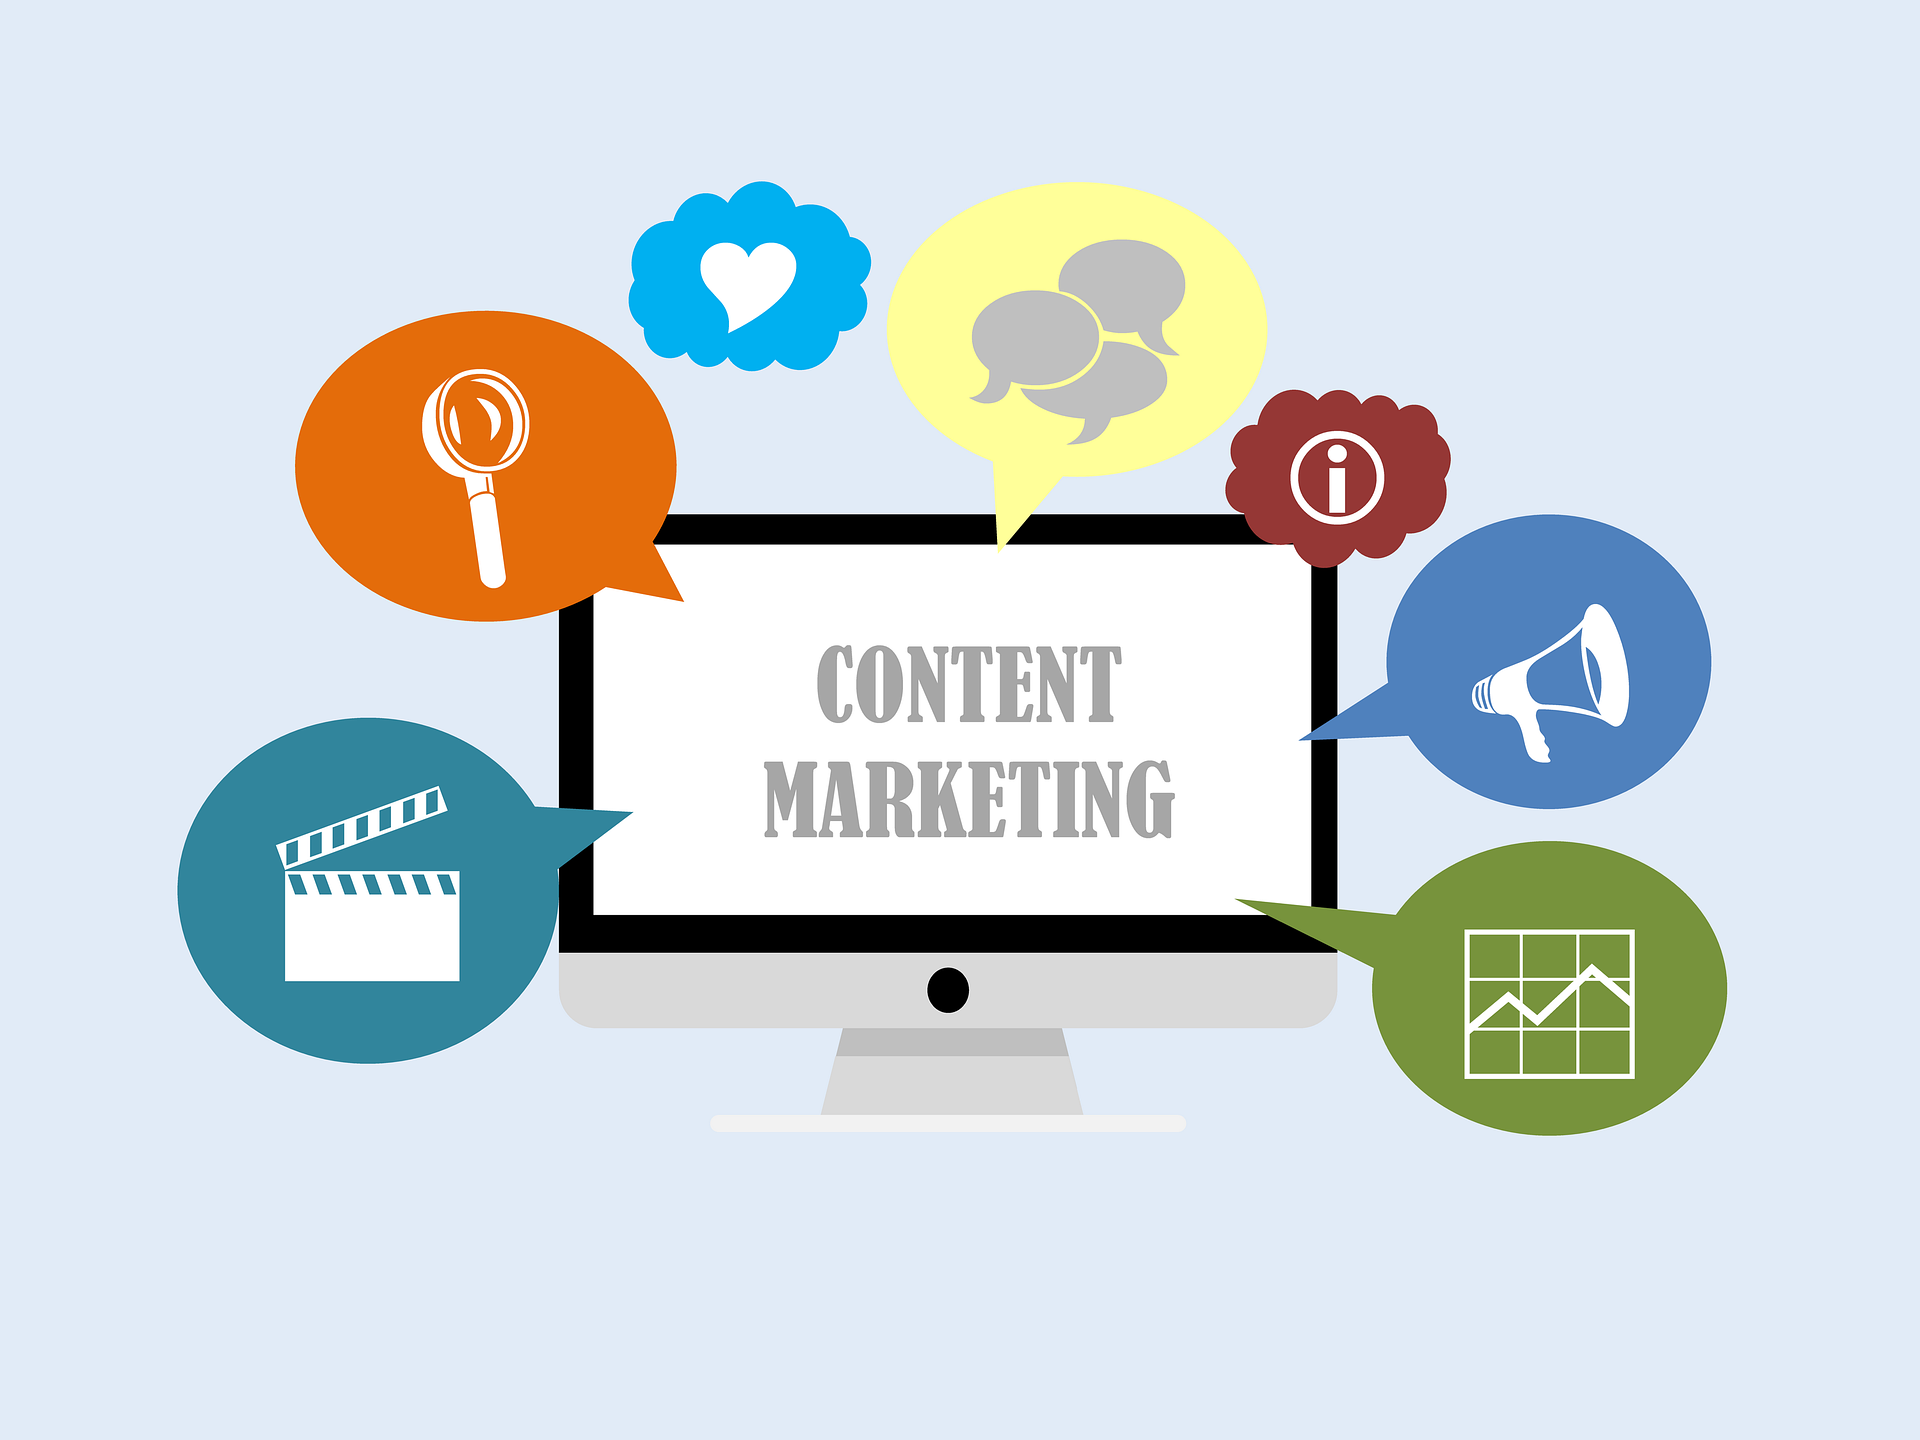 5 content marketing tools for business